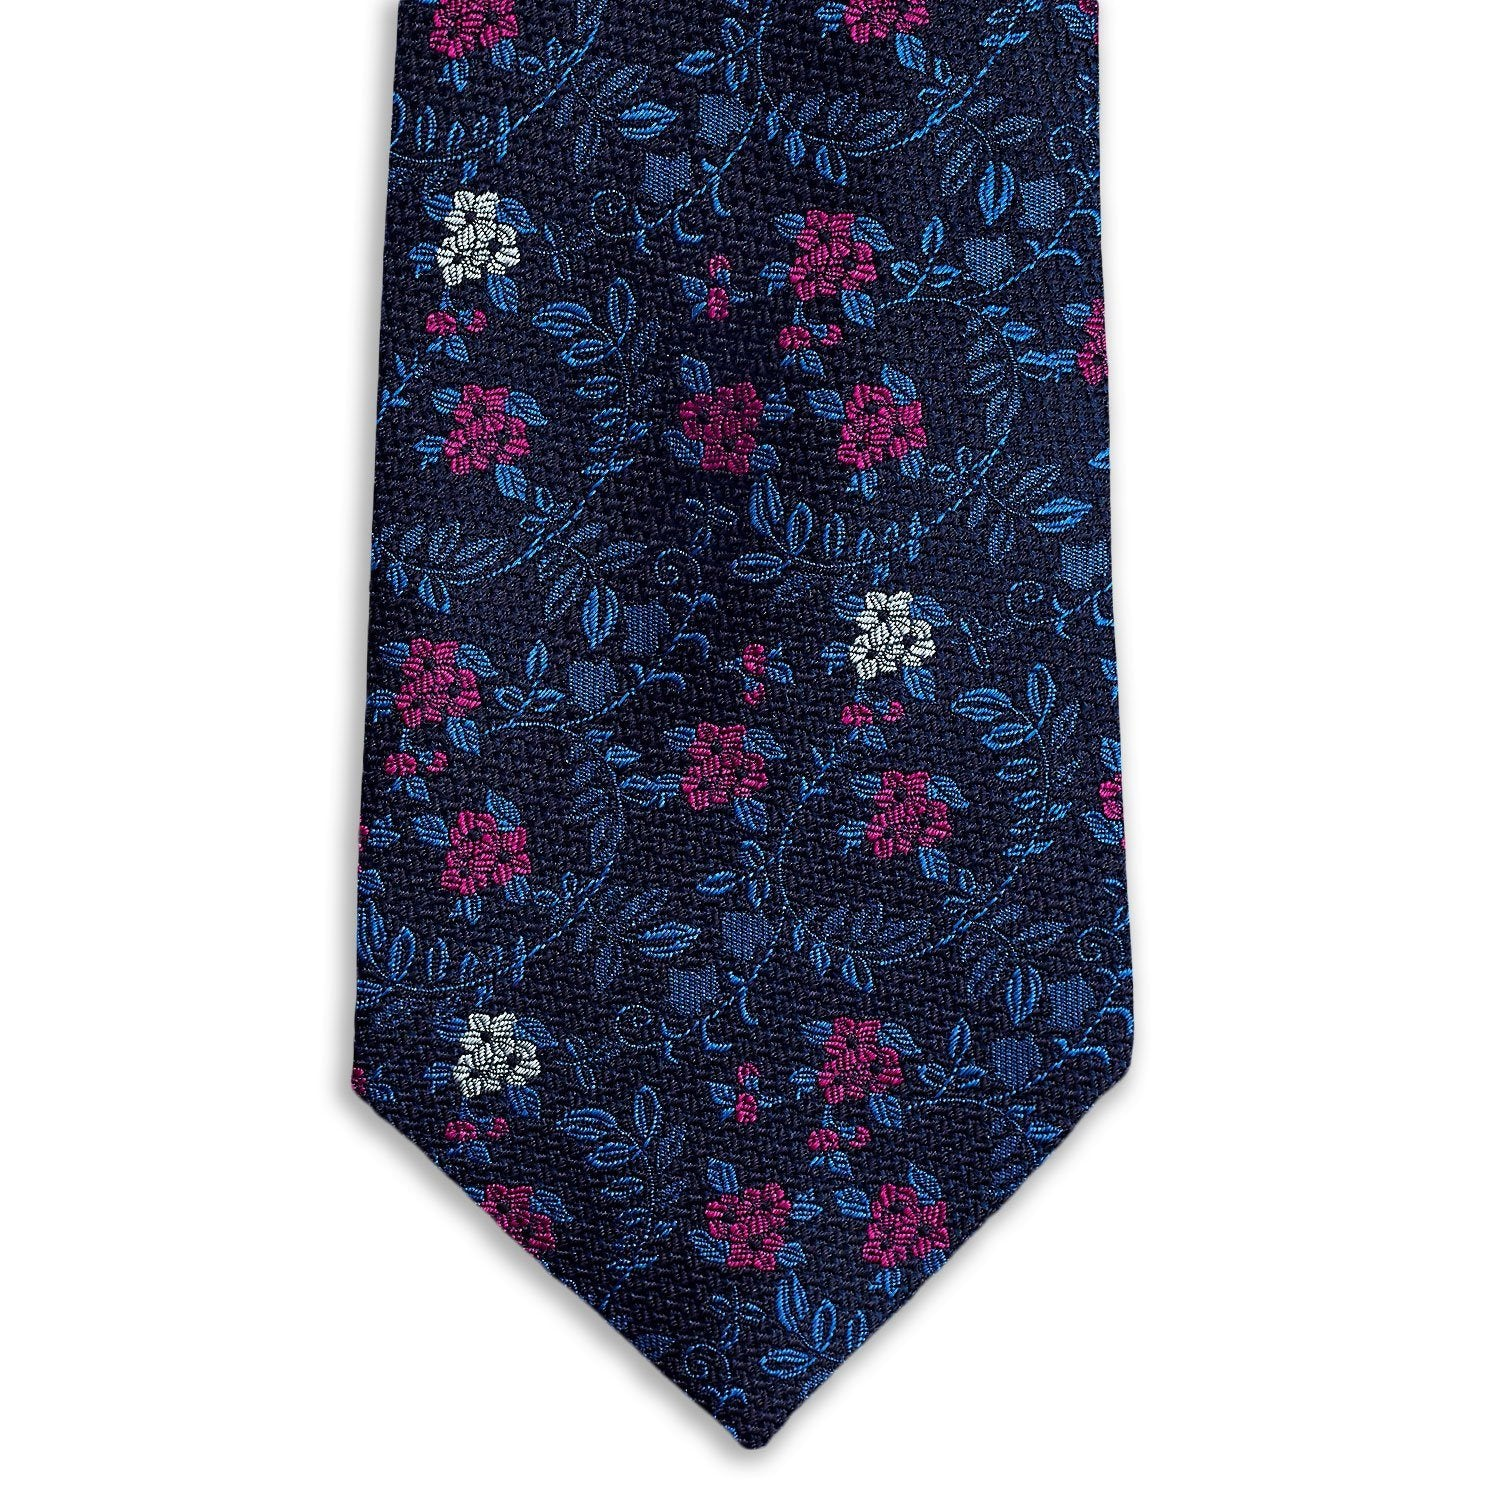 Micro Blue & Pink Floral Necktie Neckties Sirocco Fan Accessories